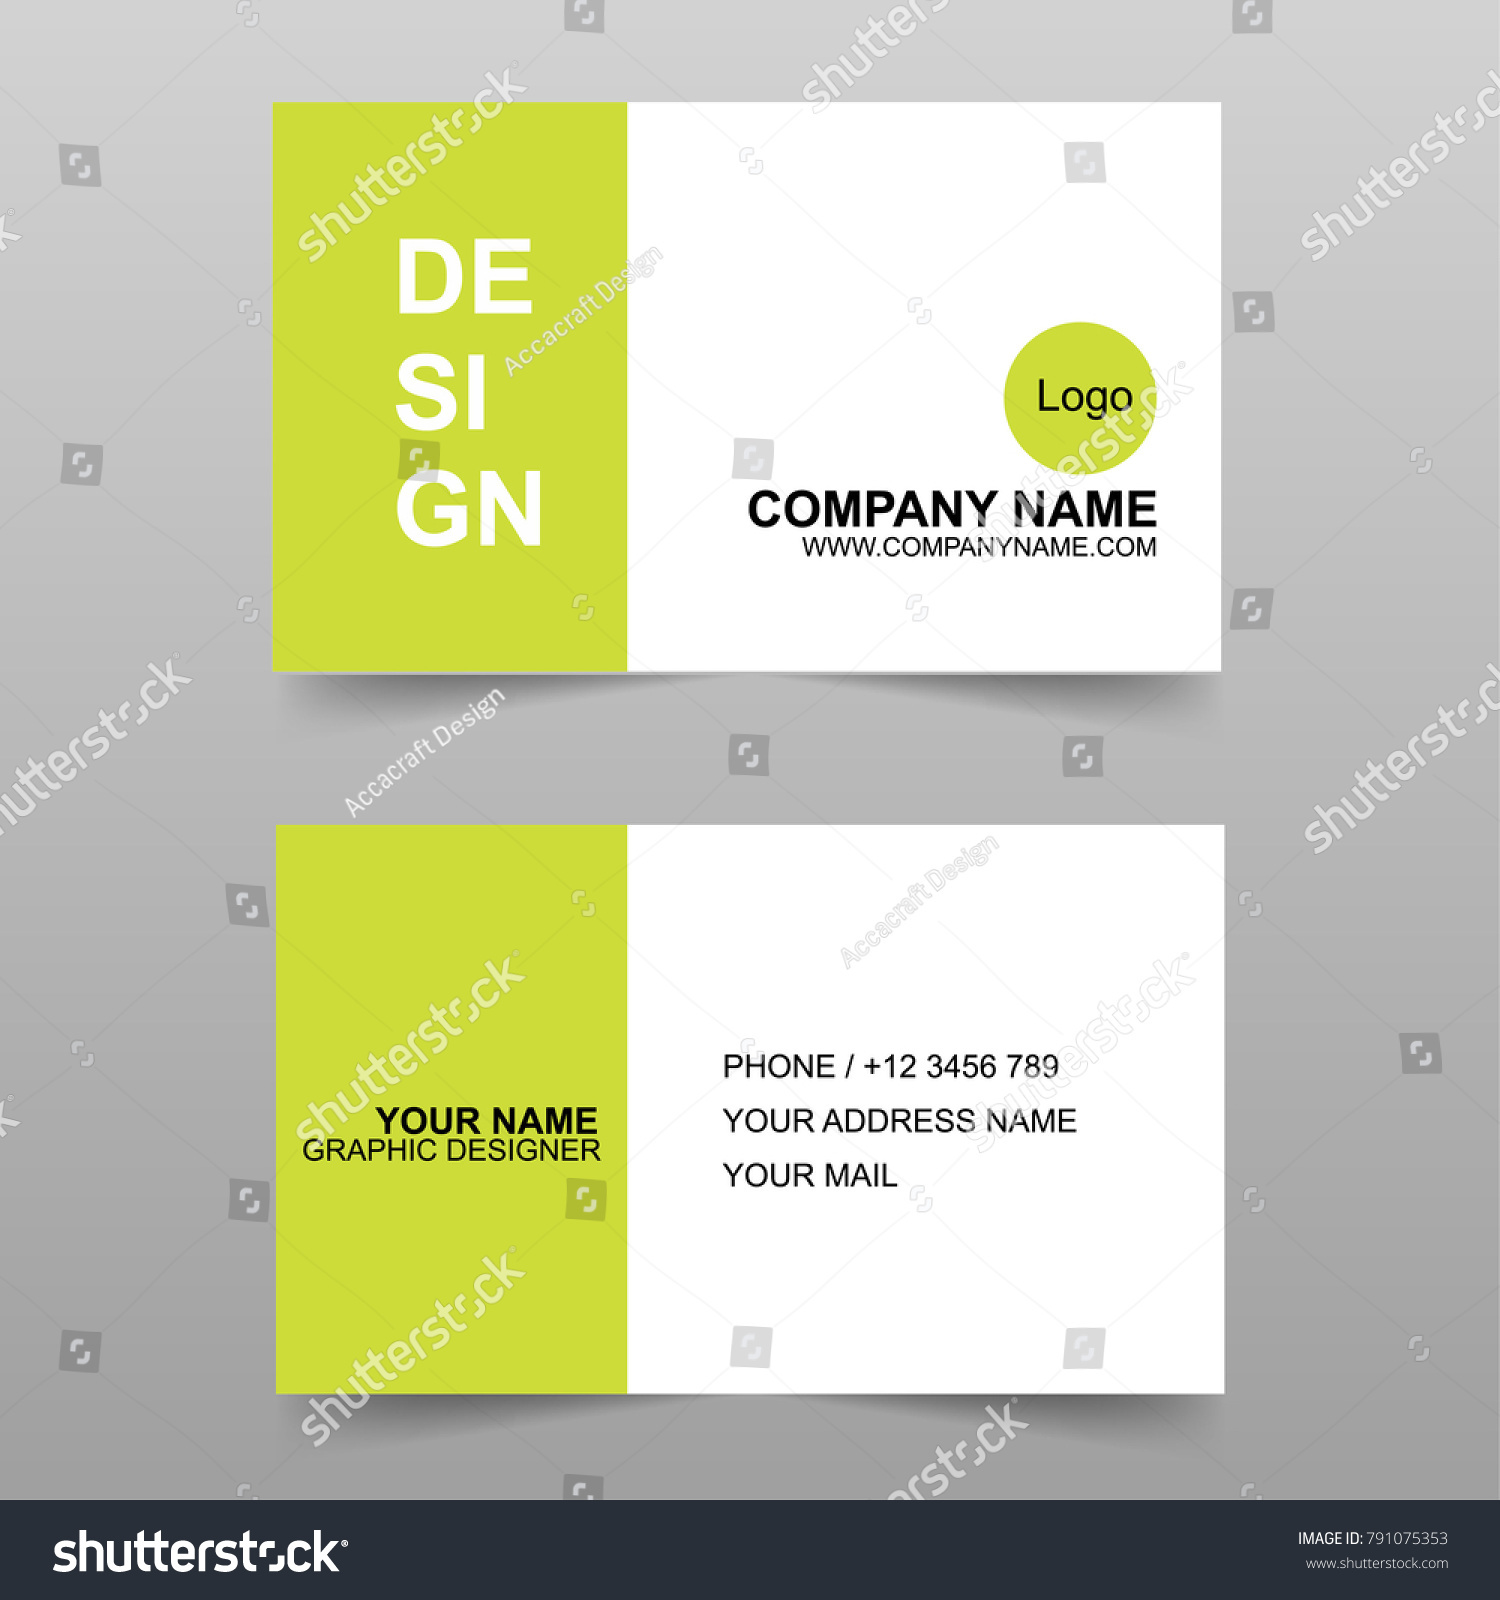 Simple Professional Business Card Design Template Stock Vector ...